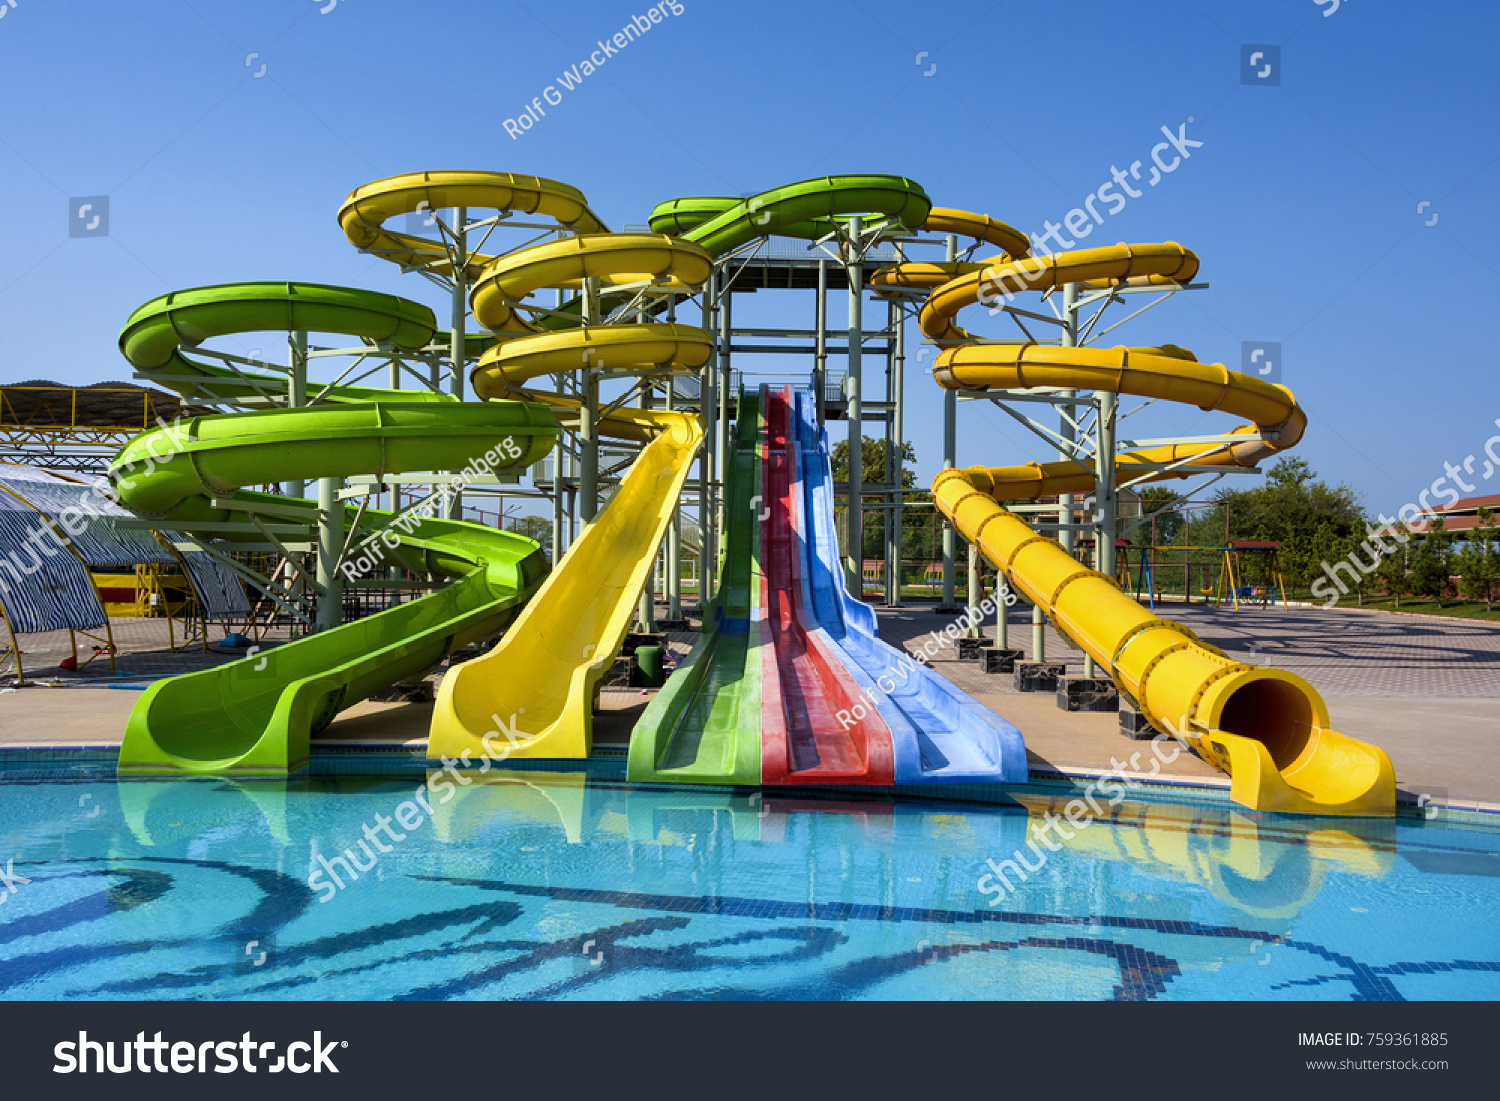 Azerbaijan Near Nabran Big Colorful Water Slide Fun Park With Swimming Pool And Blue